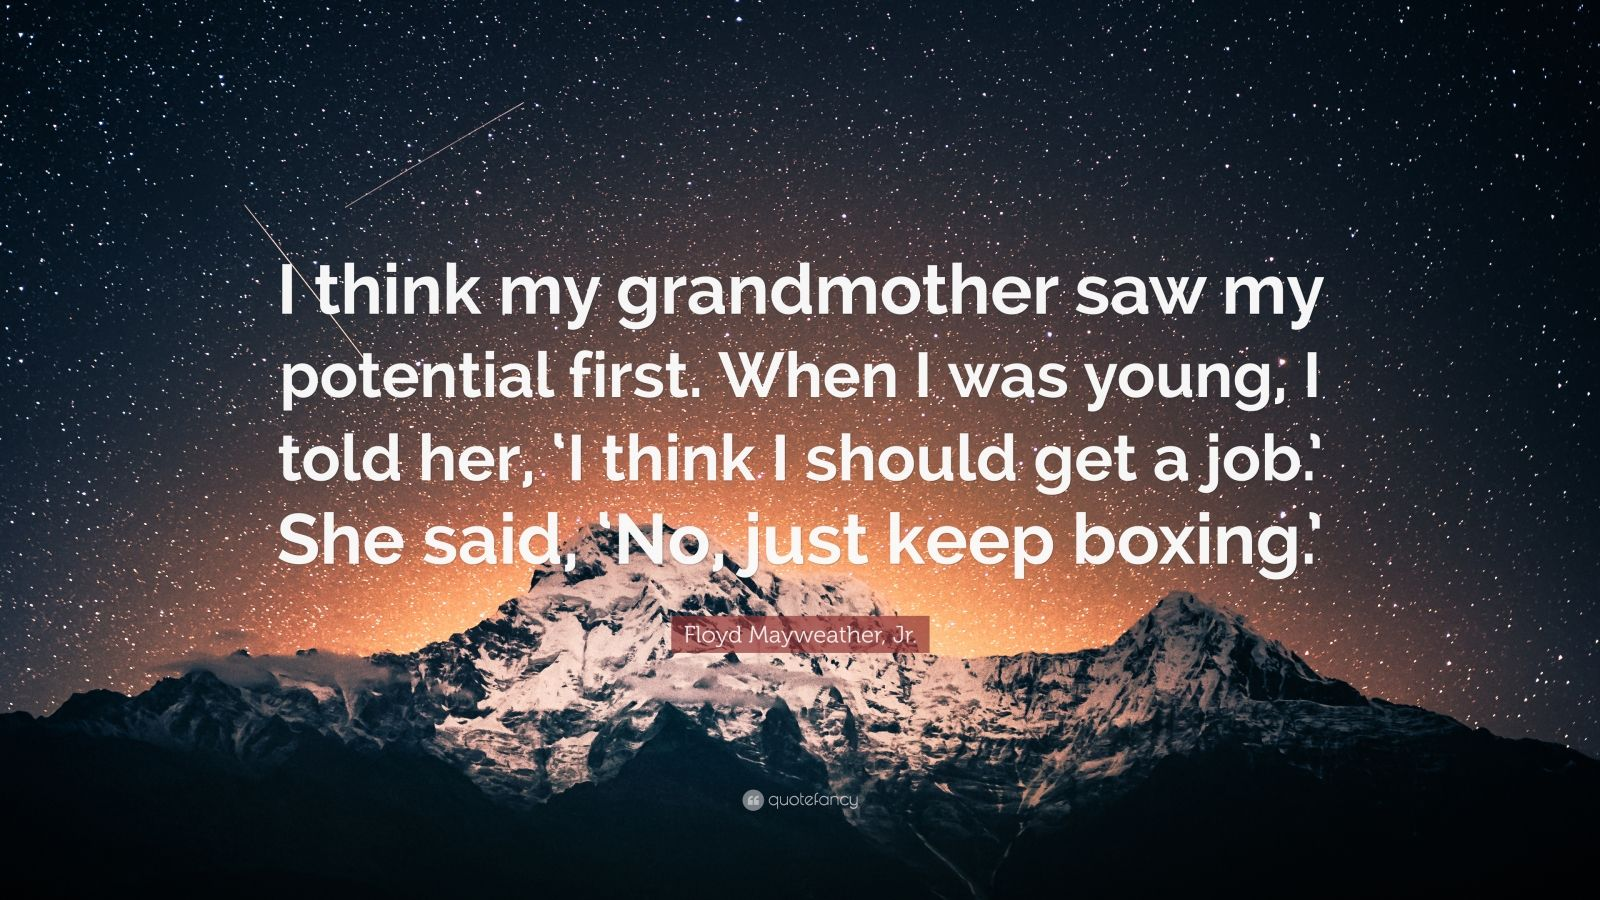 """Floyd Mayweather, Jr. Quote: """"I think my grandmother saw my potential first. When I was young, I told her, 'I think I should get a job.' She said, 'No, just keep boxing.'"""""""